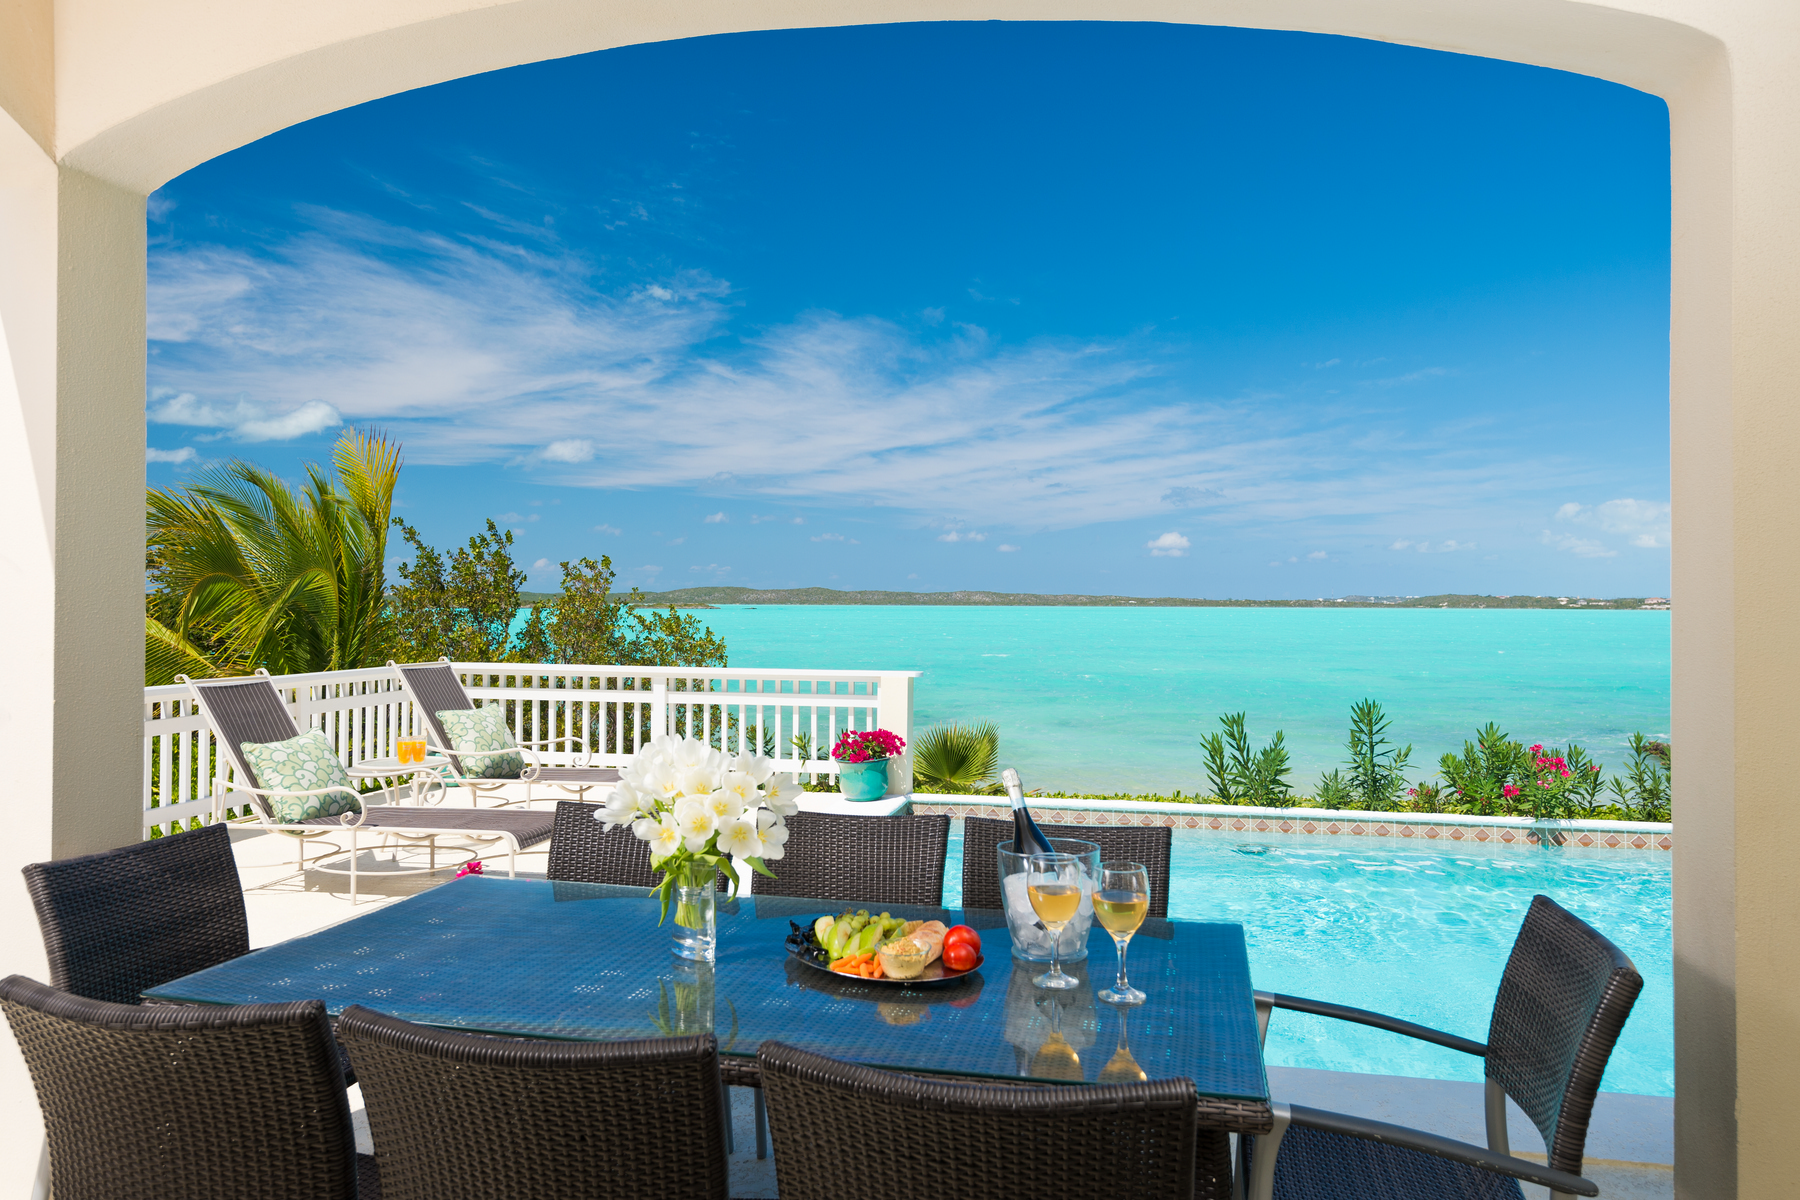 Single Family Home for Sale at BRIGHT IDEA VILLA Chalk Sound, Turks And Caicos Islands